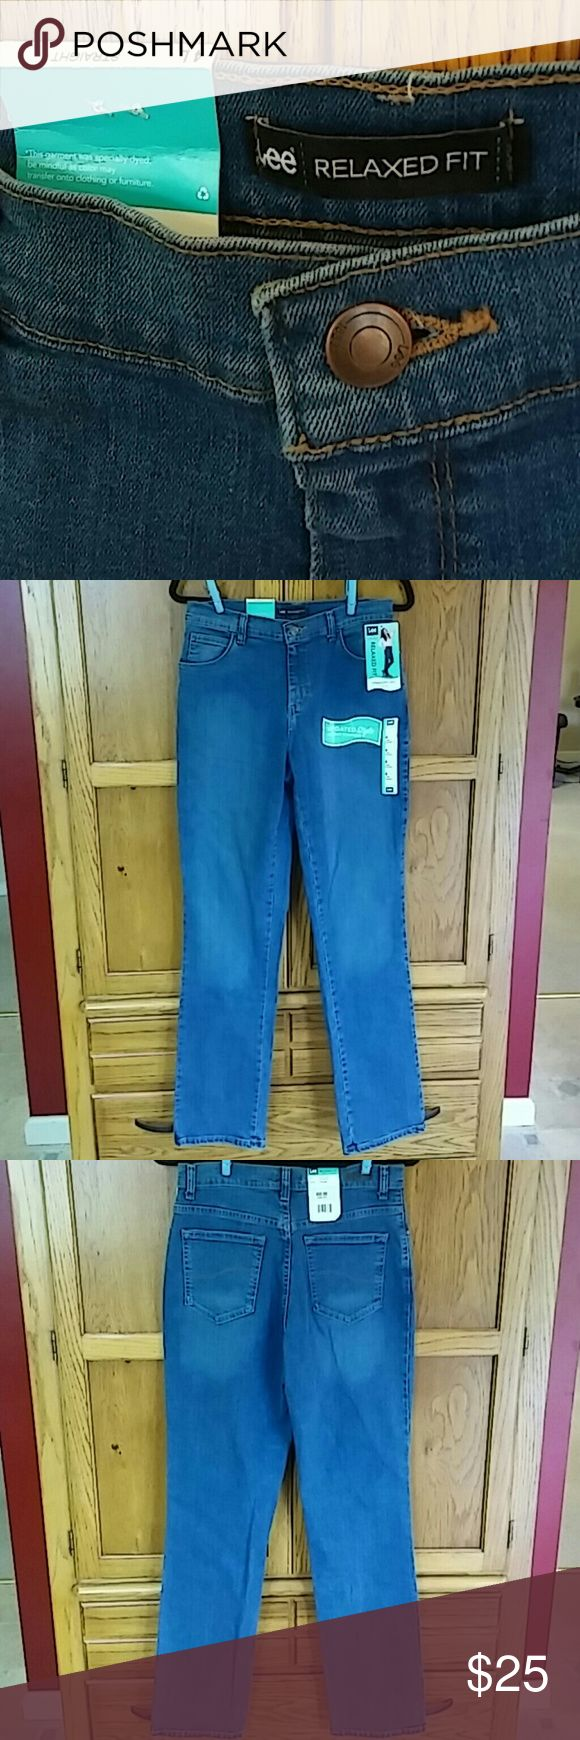 Clearance!LEE Relaxed Fit Straight Leg Relaxed Fit Straight Leg At The Waist Jeans 4L Auth Azul Long  Waist- 14.5in across Leg Opening-7.5in across Inseam-32.5in long Outer Length-42.5in long  98%cotton-2% spandex  Jean color changes in pics  depending on flash or different lighting used to catch  details on jeans-etc-- see full length pictures  Lee1 LEE Jeans Straight Leg